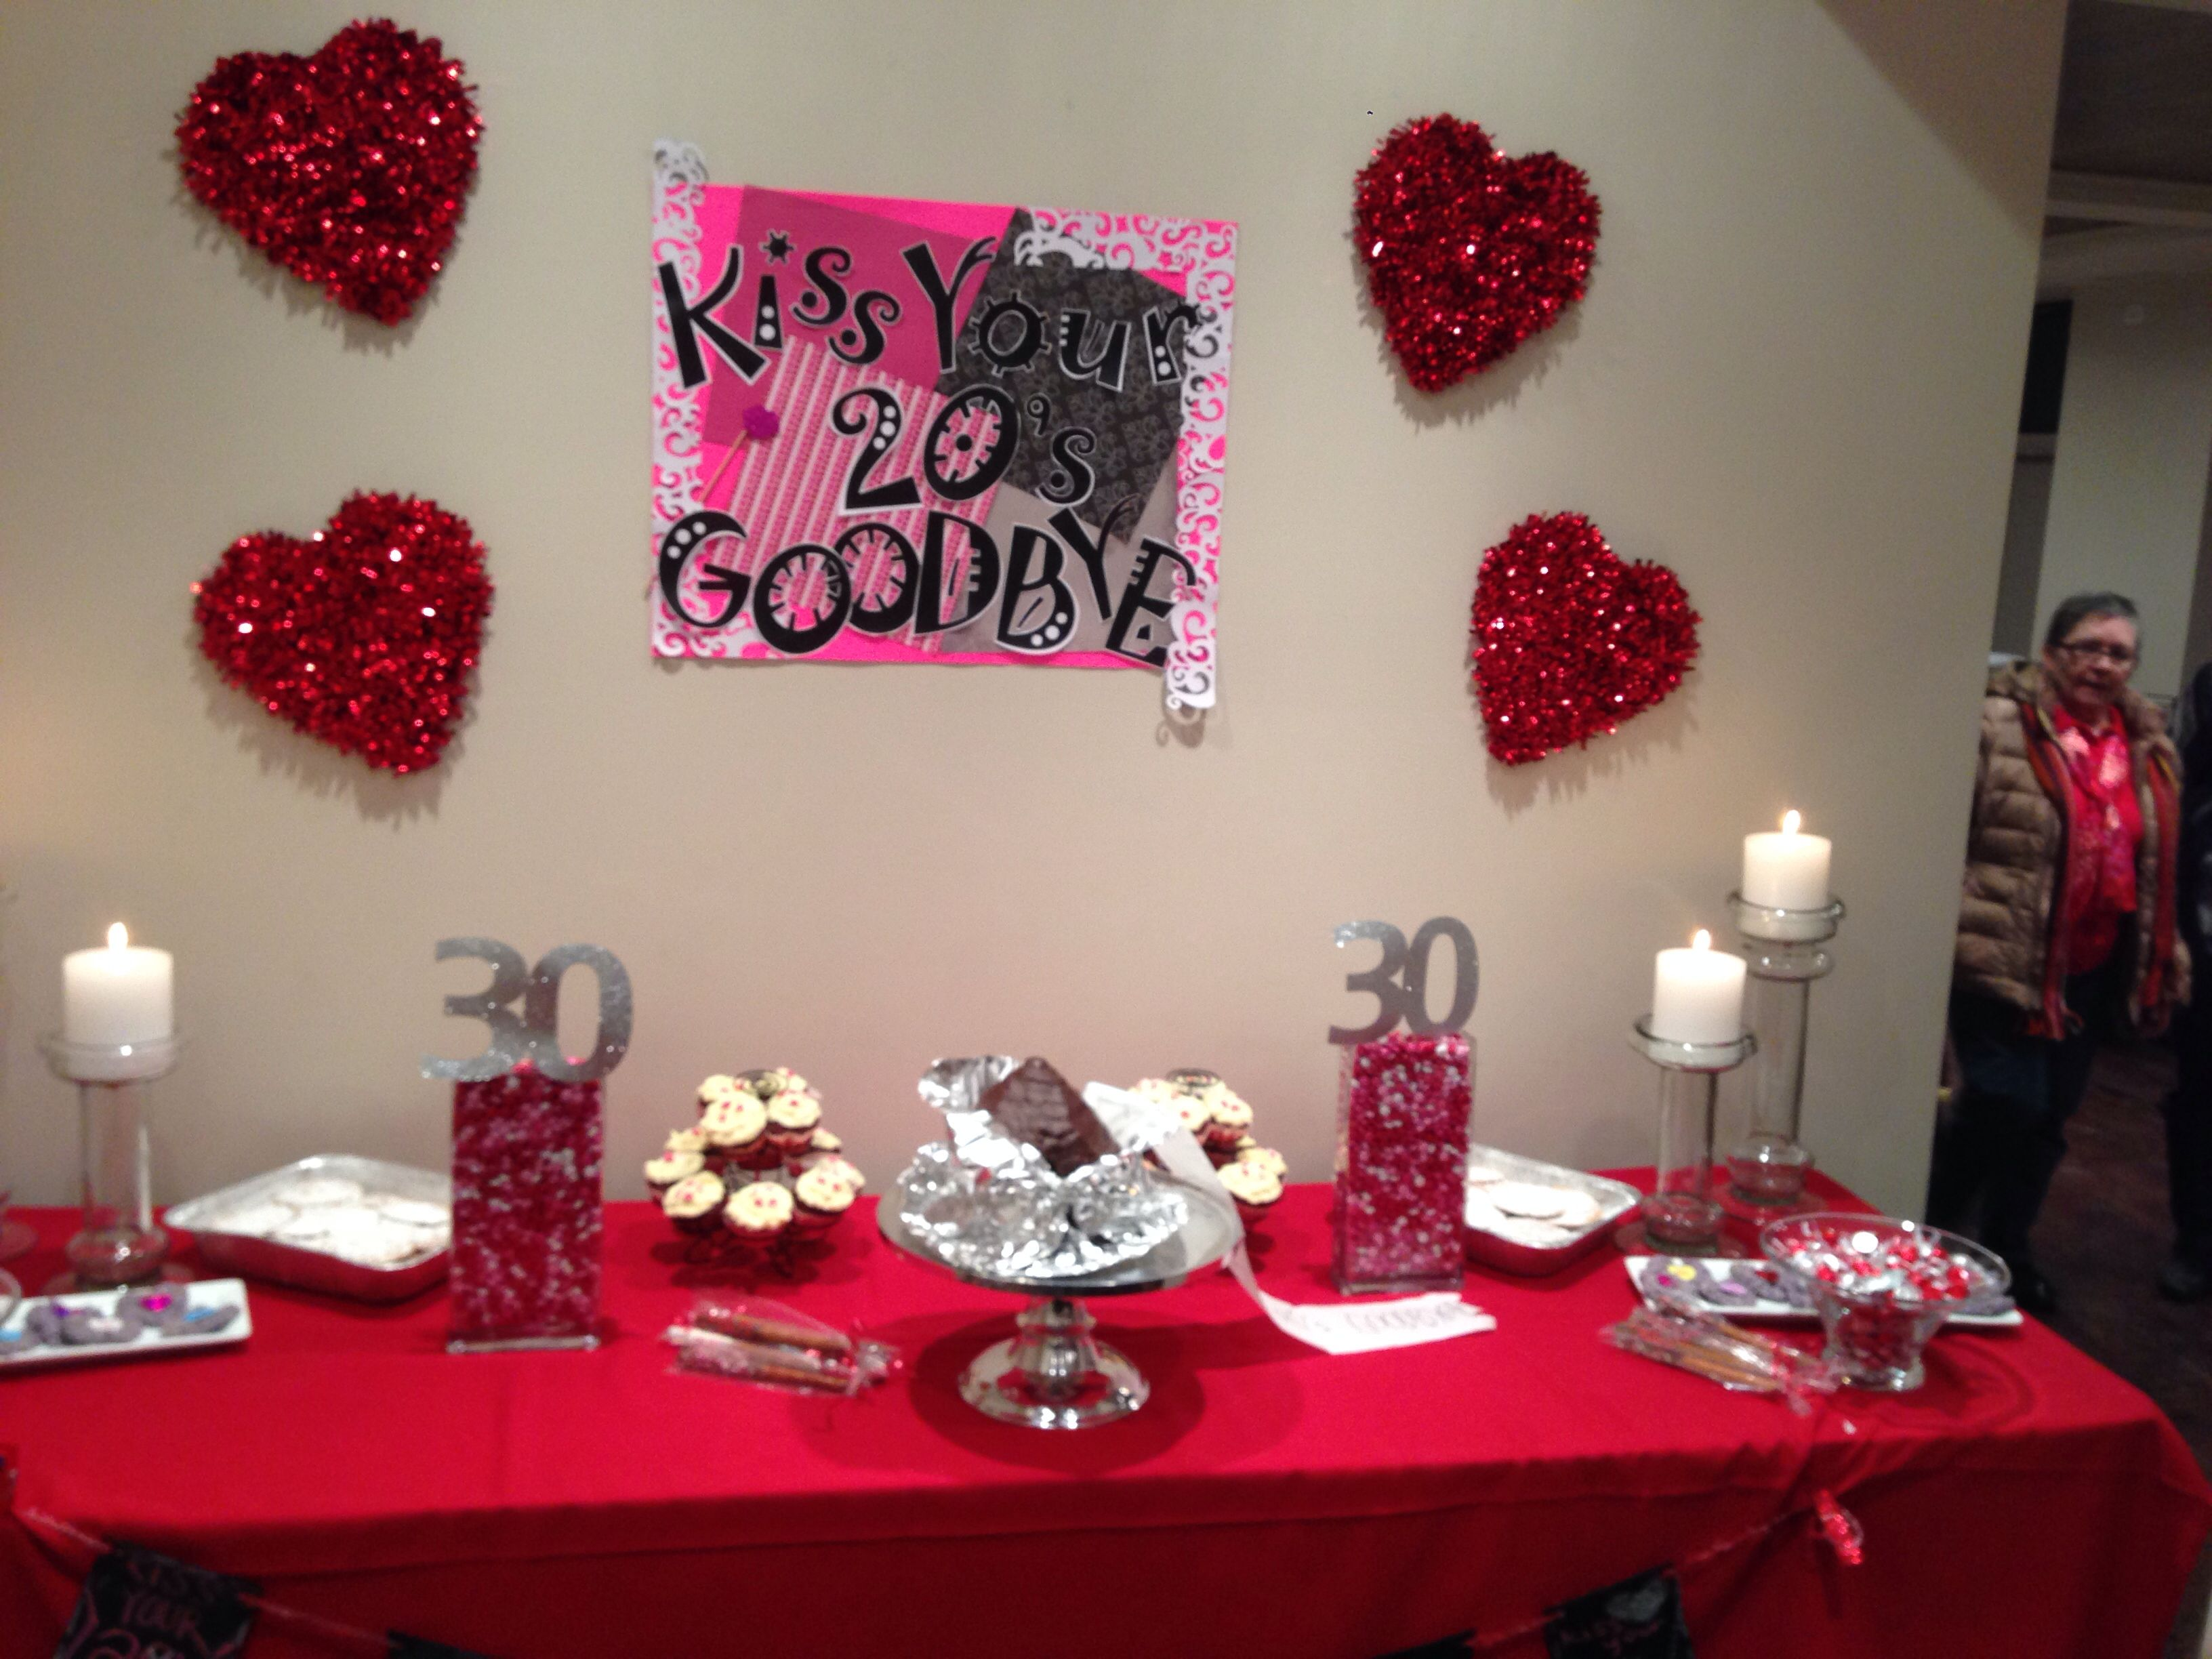 Kiss Your 20s Goodbye Dessert Table For 30th Birthday At Freddies Chicago